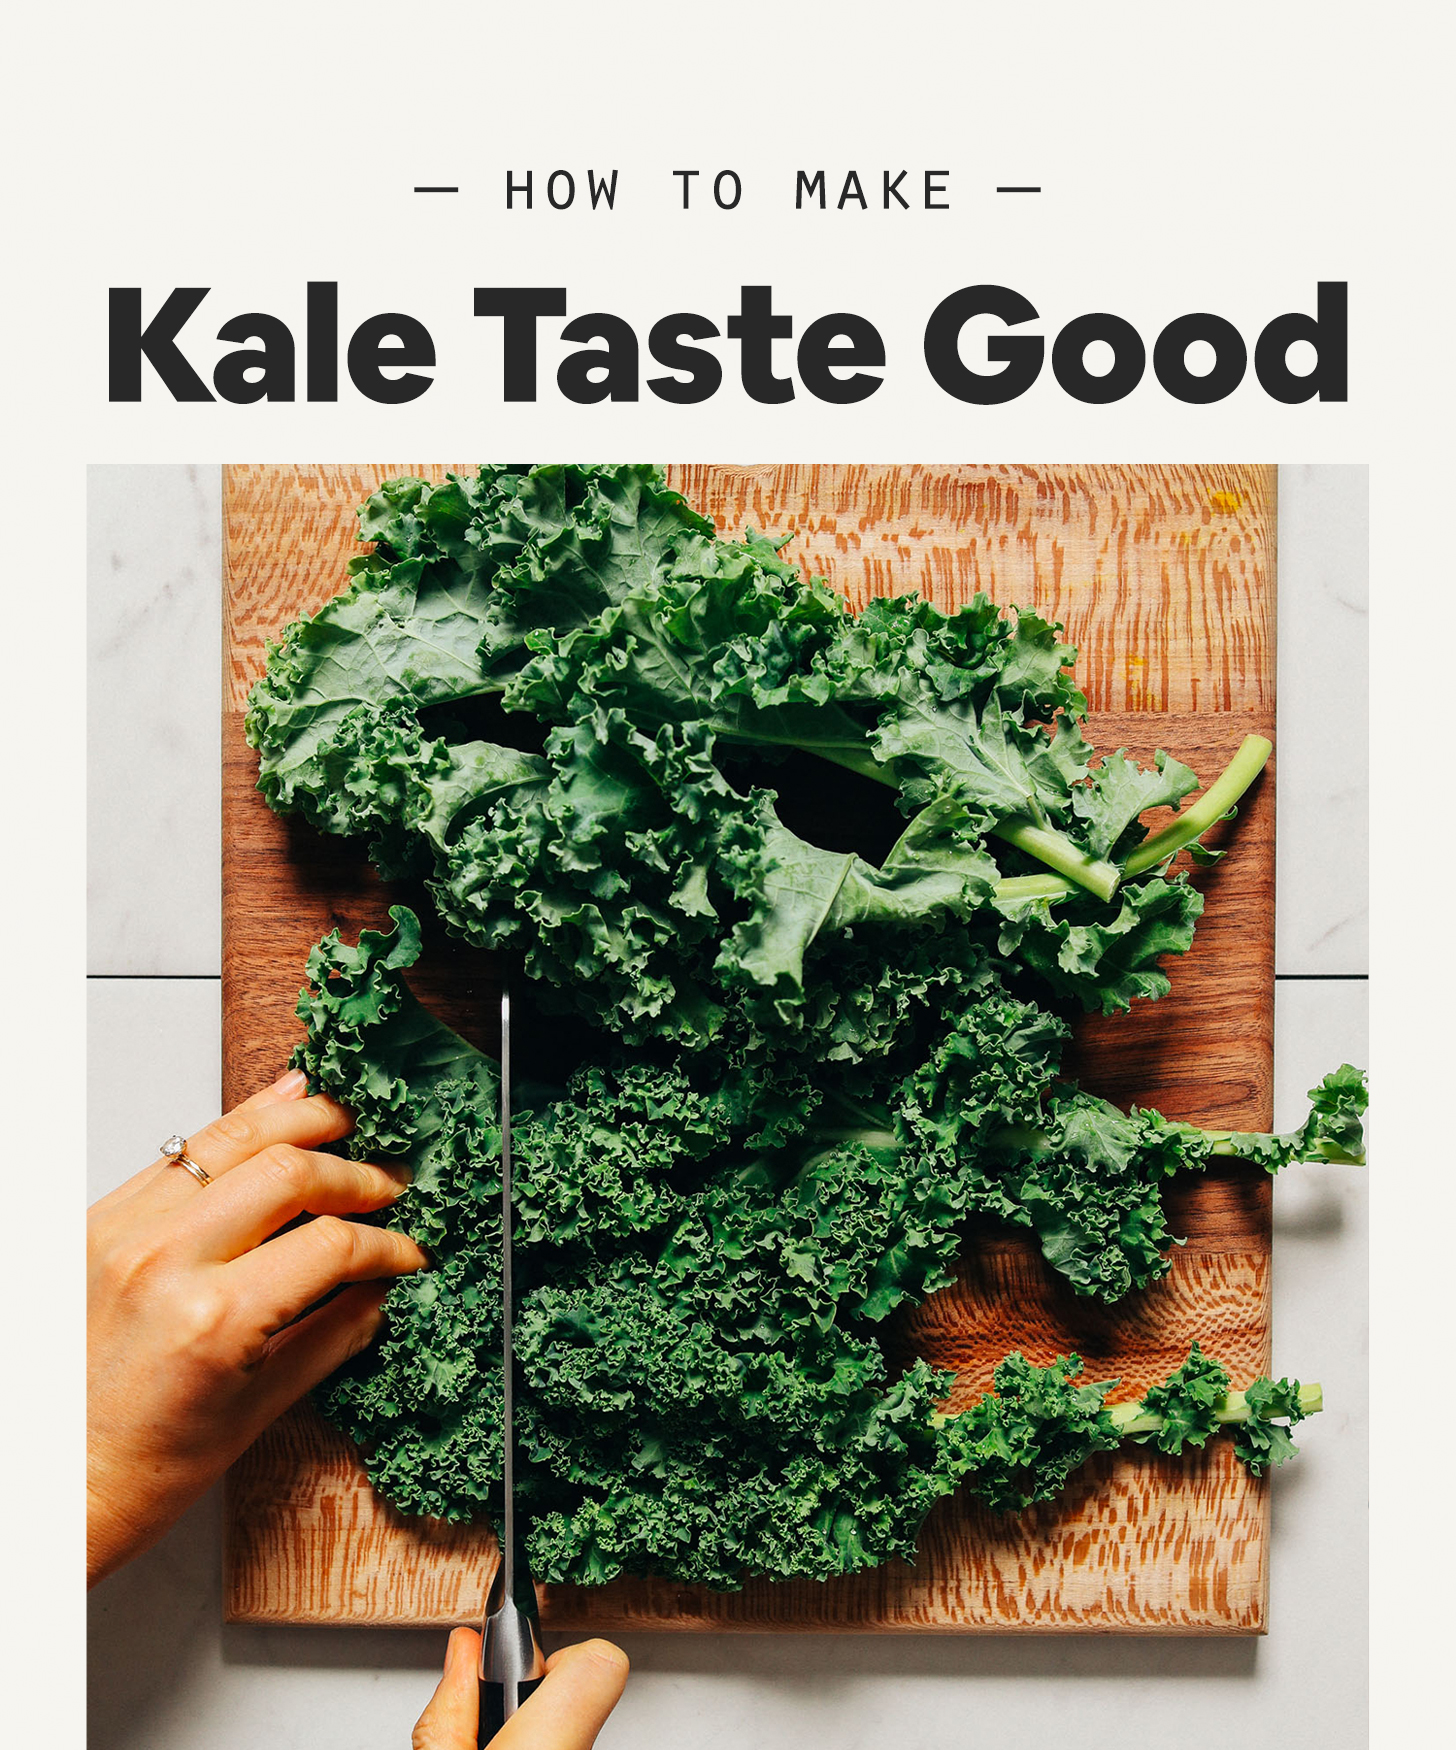 Using a knife to chop kale for our tutorial on How to Make Kale Taste Good